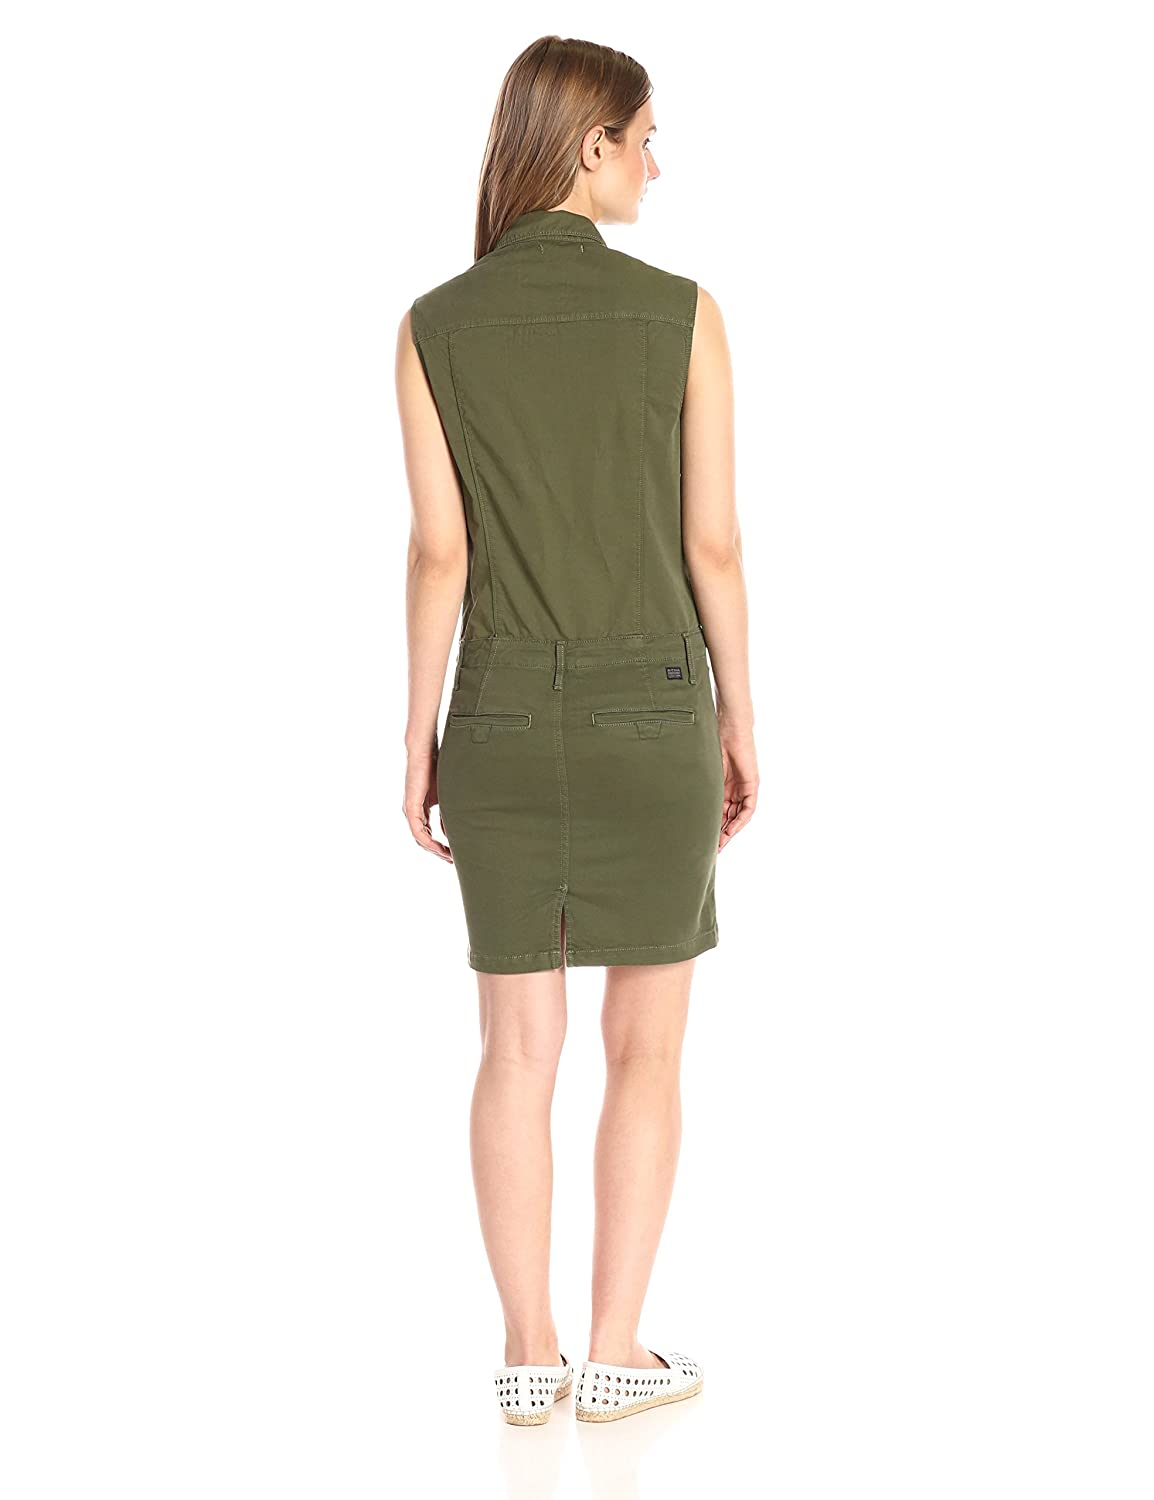 Amazon.com: G-Star Raw Womens Rovic Slim Dress Short Sleeve trone Super Stretch Twill, Bright Rovic Green, Large: Clothing